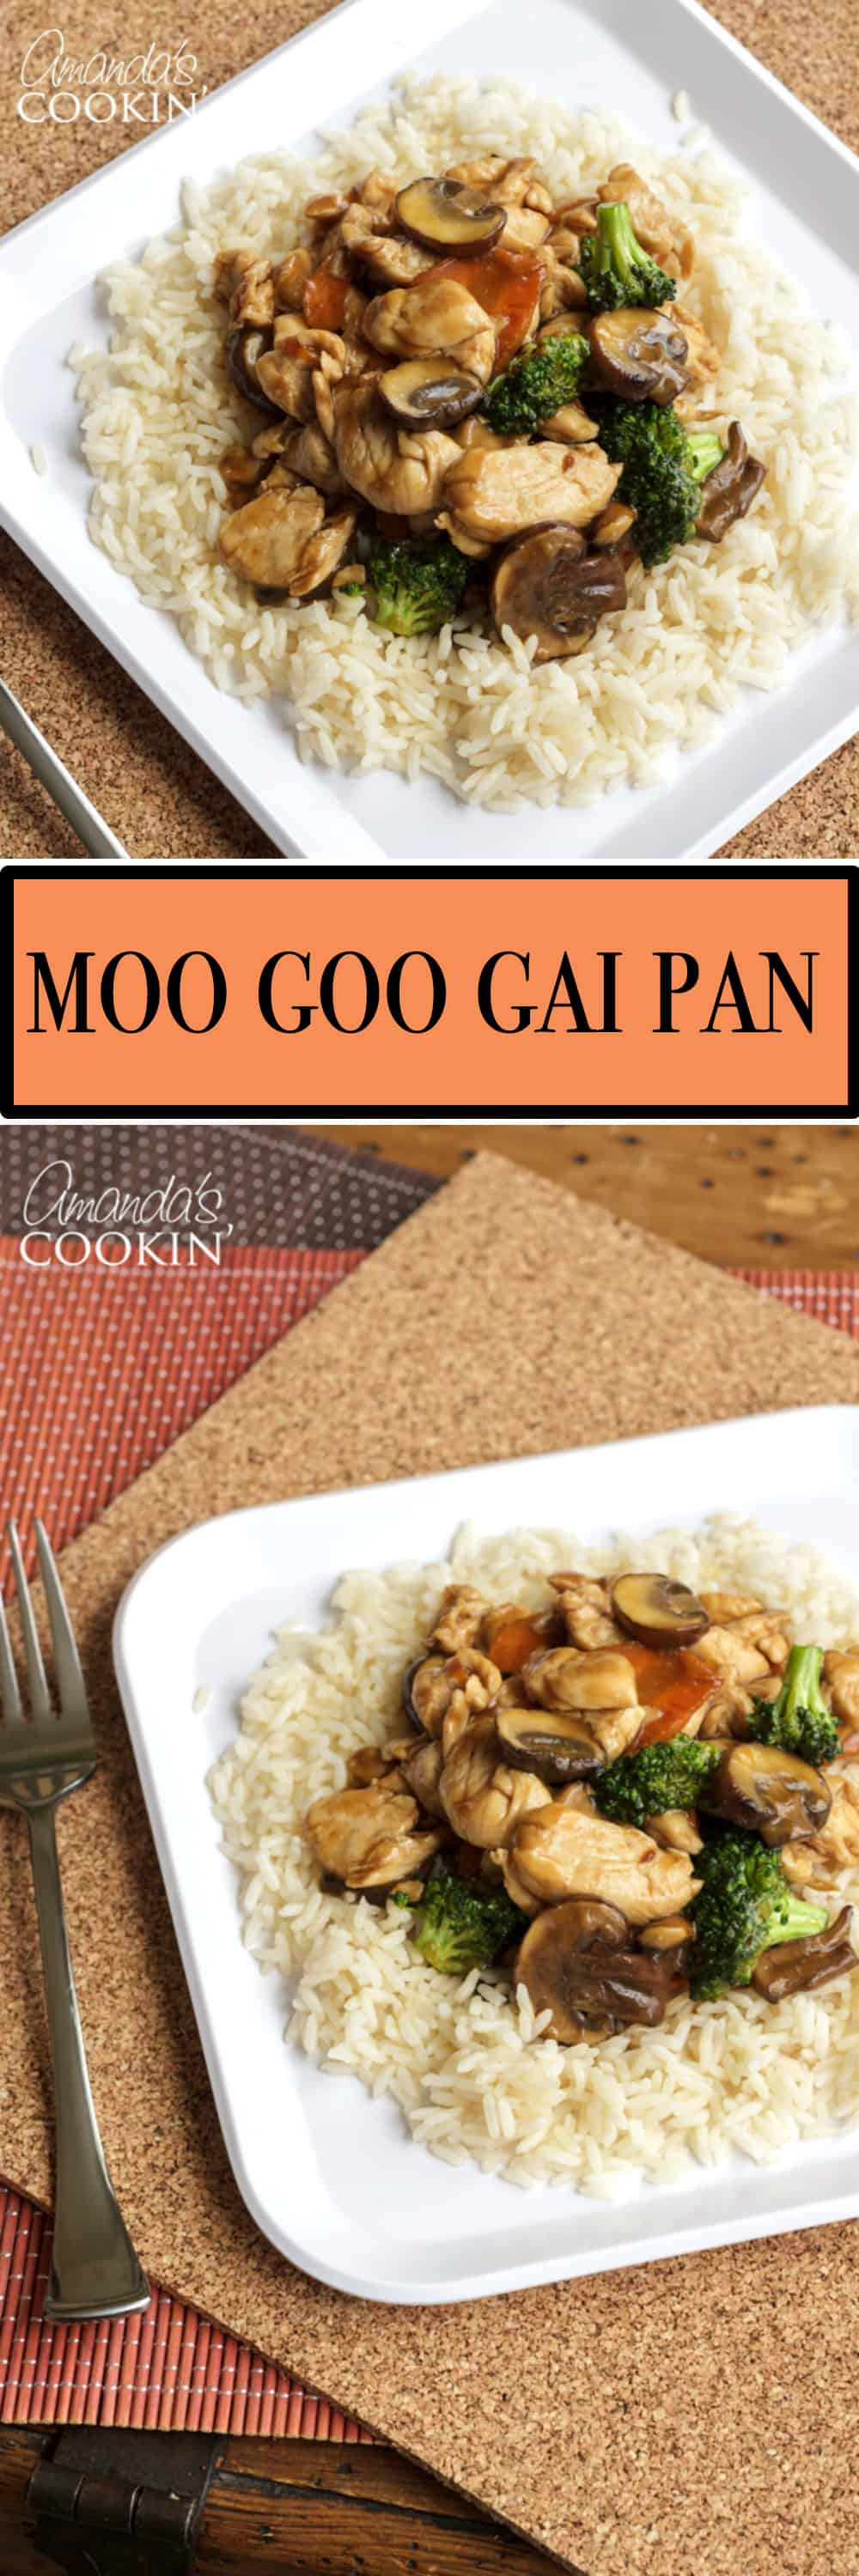 pinterst image for moo goo gai pan with text